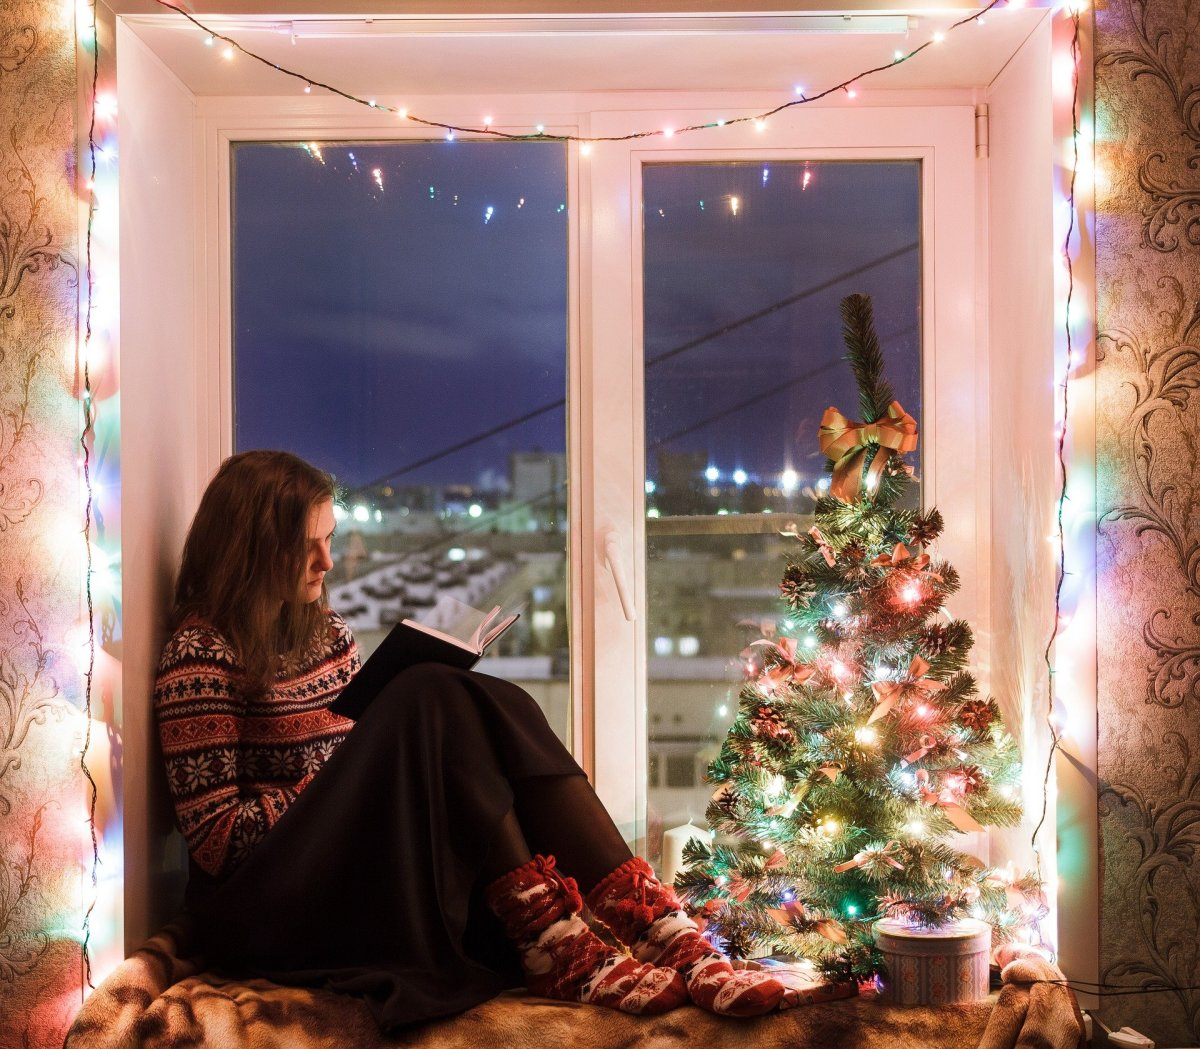 Learn how to enjoy the holidays alone.